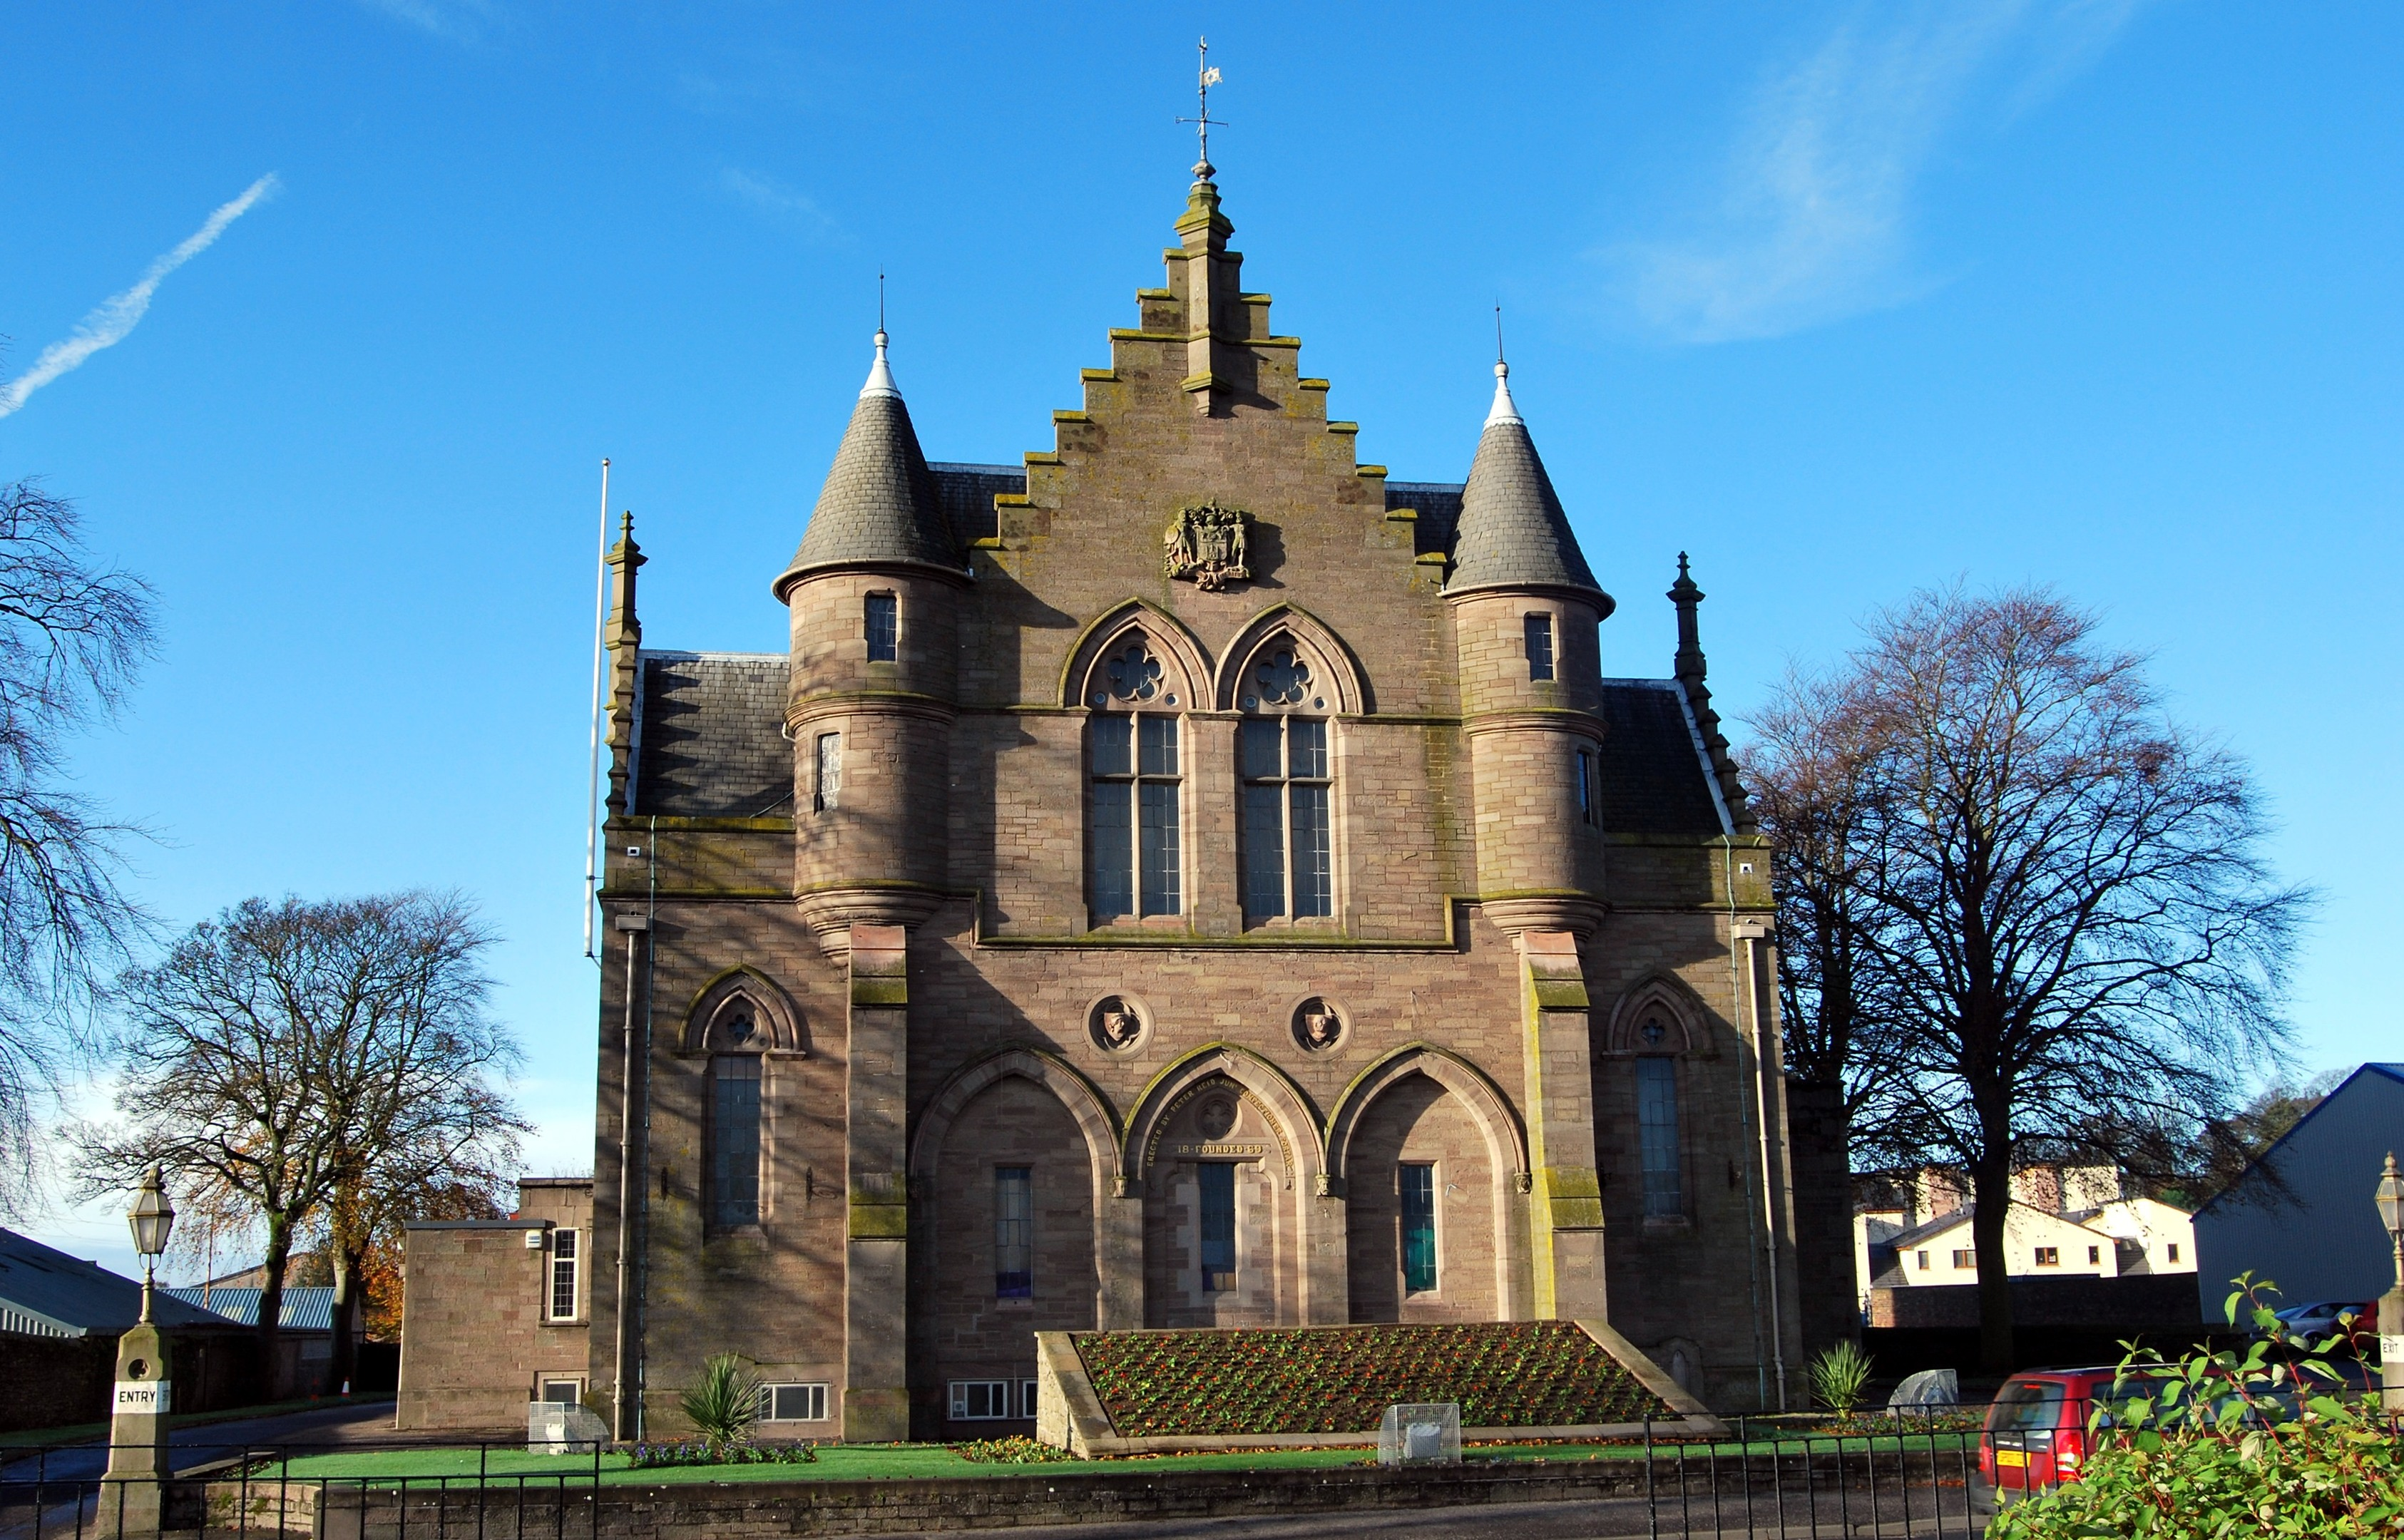 Forfar's Reid Hall is a prime town common good asset